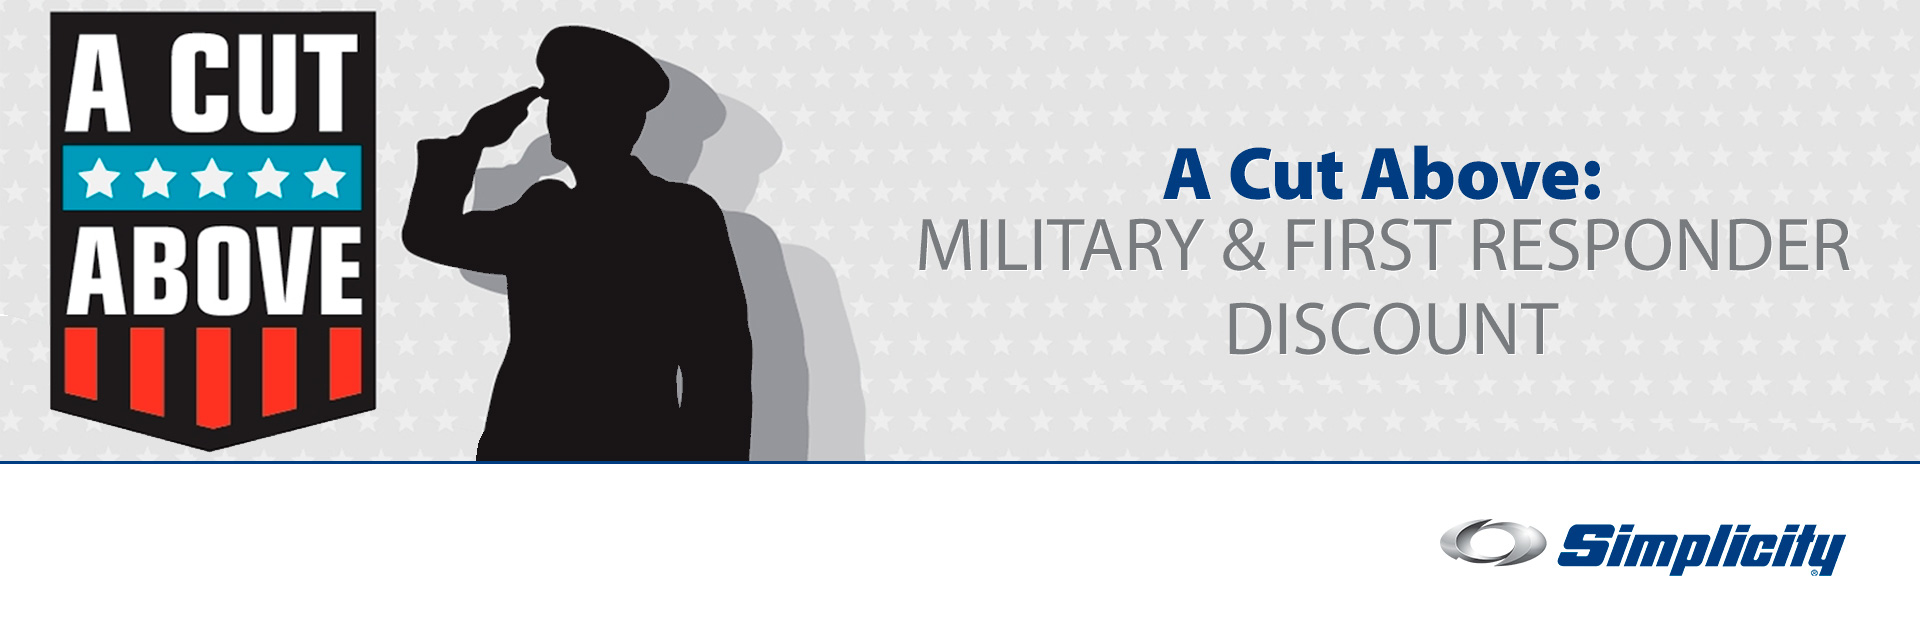 A Cut Above: Military & First Responder Discount